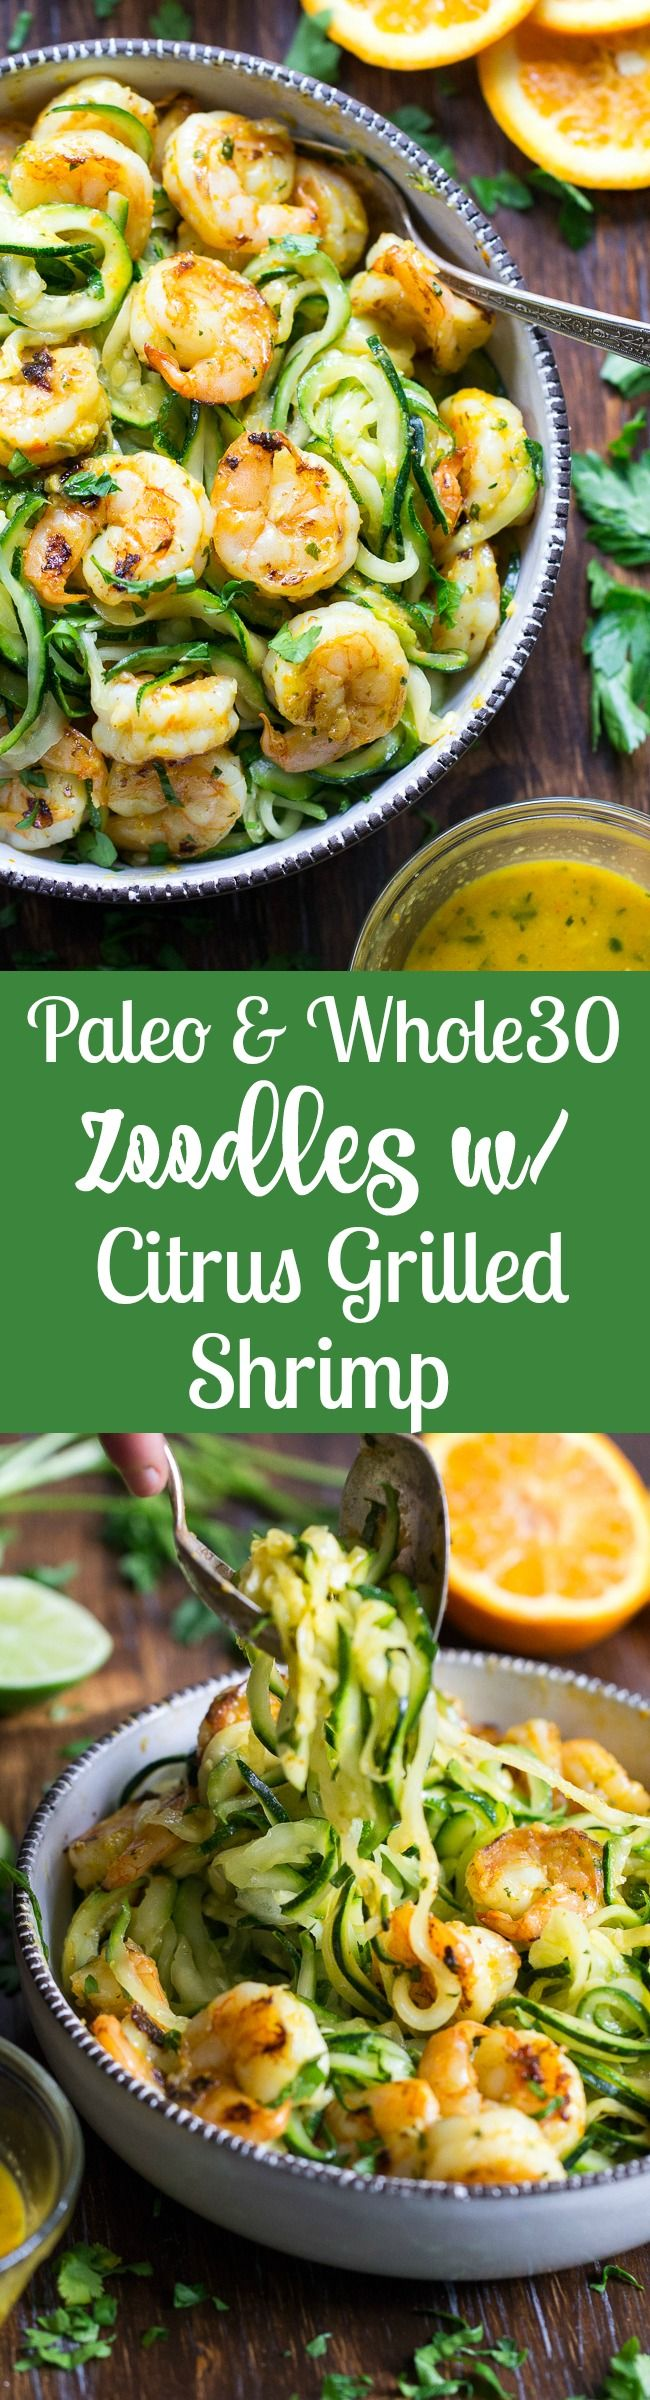 Fresh citrus grilled shrimp and zoodles create a light, healthy and super tasty lunch or dinner!    Gluten free, paleo, Whole30 friendly.